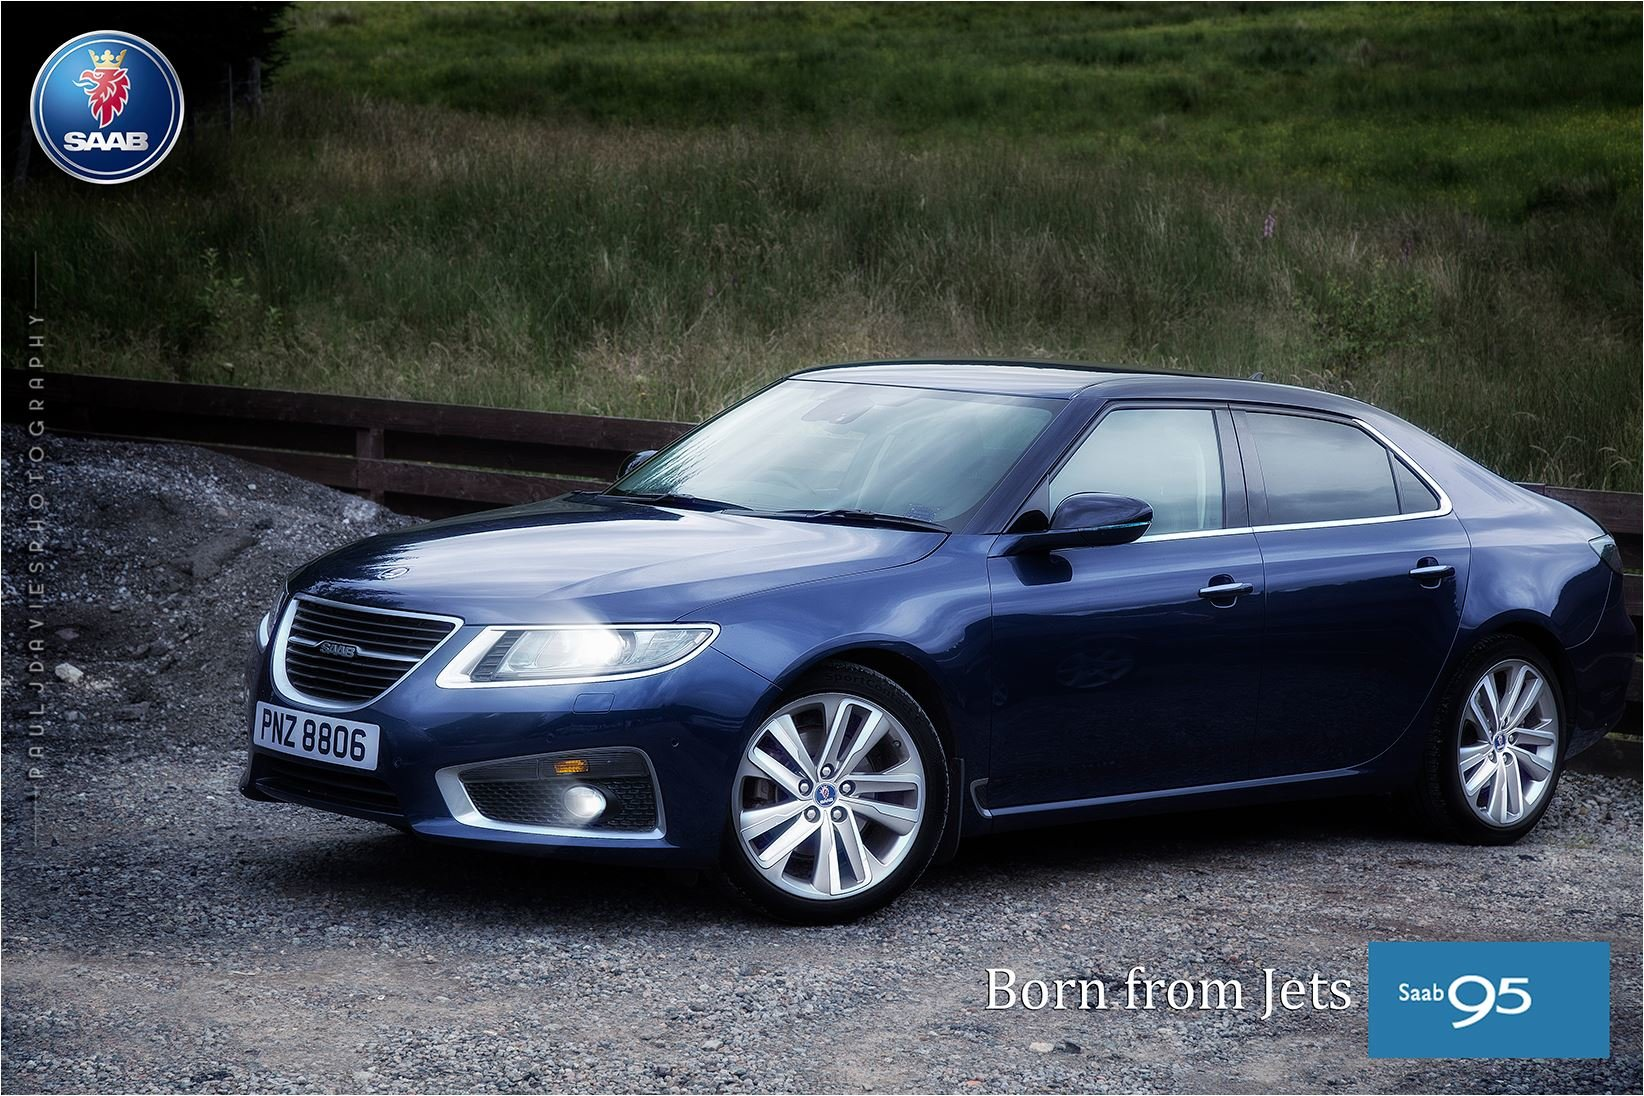 2012 Final UK SAAB For Sale (picture 1 of 6)